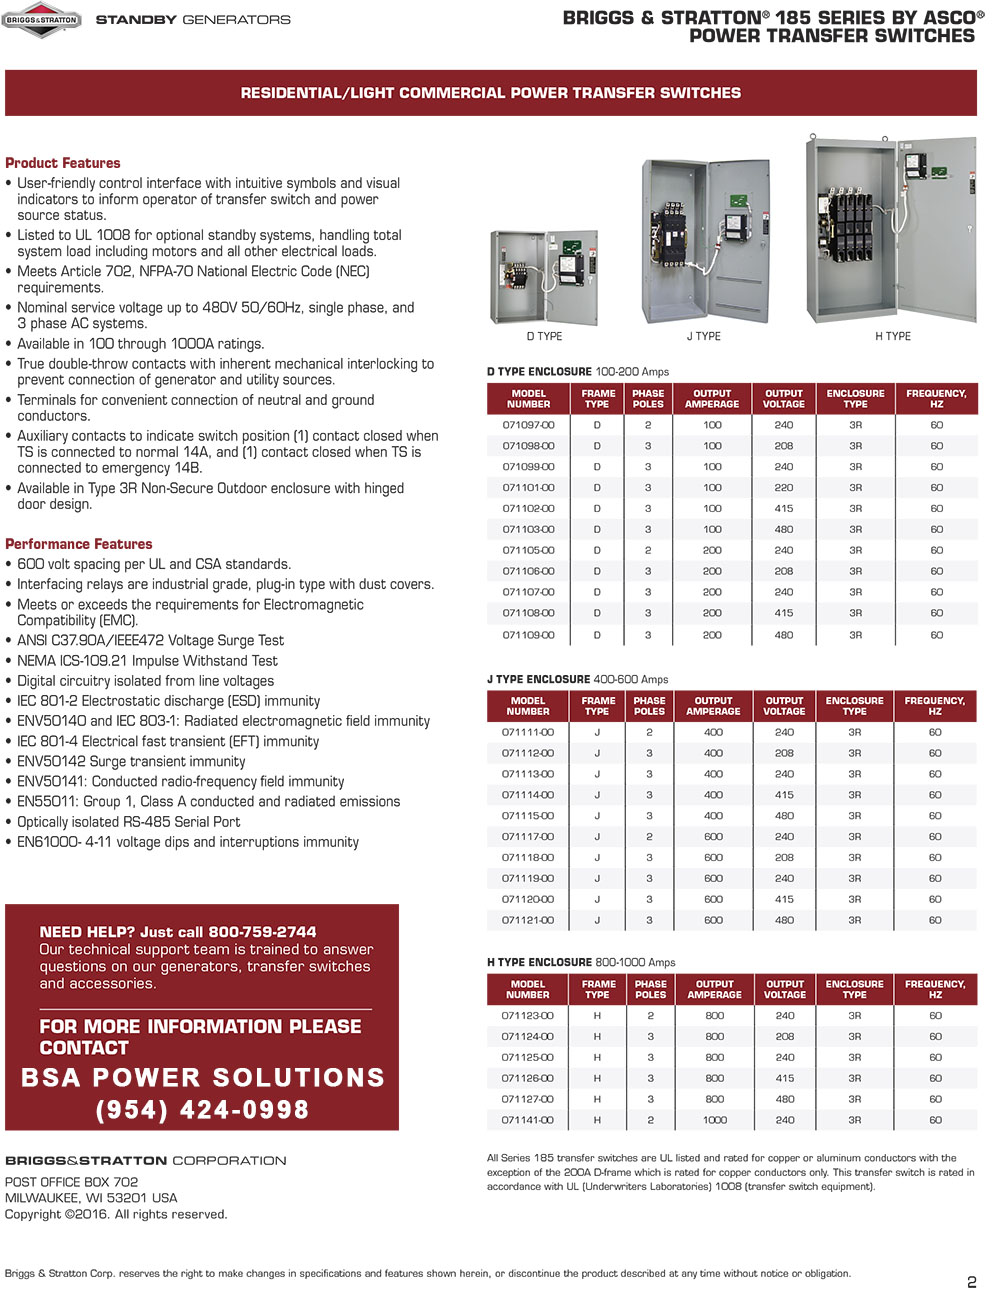 A Briggs & Stratton® 185 Series Automatic Transfer Switch by ASCO® provides all the intelligence your generator needs to make sure the power stays on when utility power fails. It automatically senses loss of utility power, and signals your generator to start and restore power to your business or home.